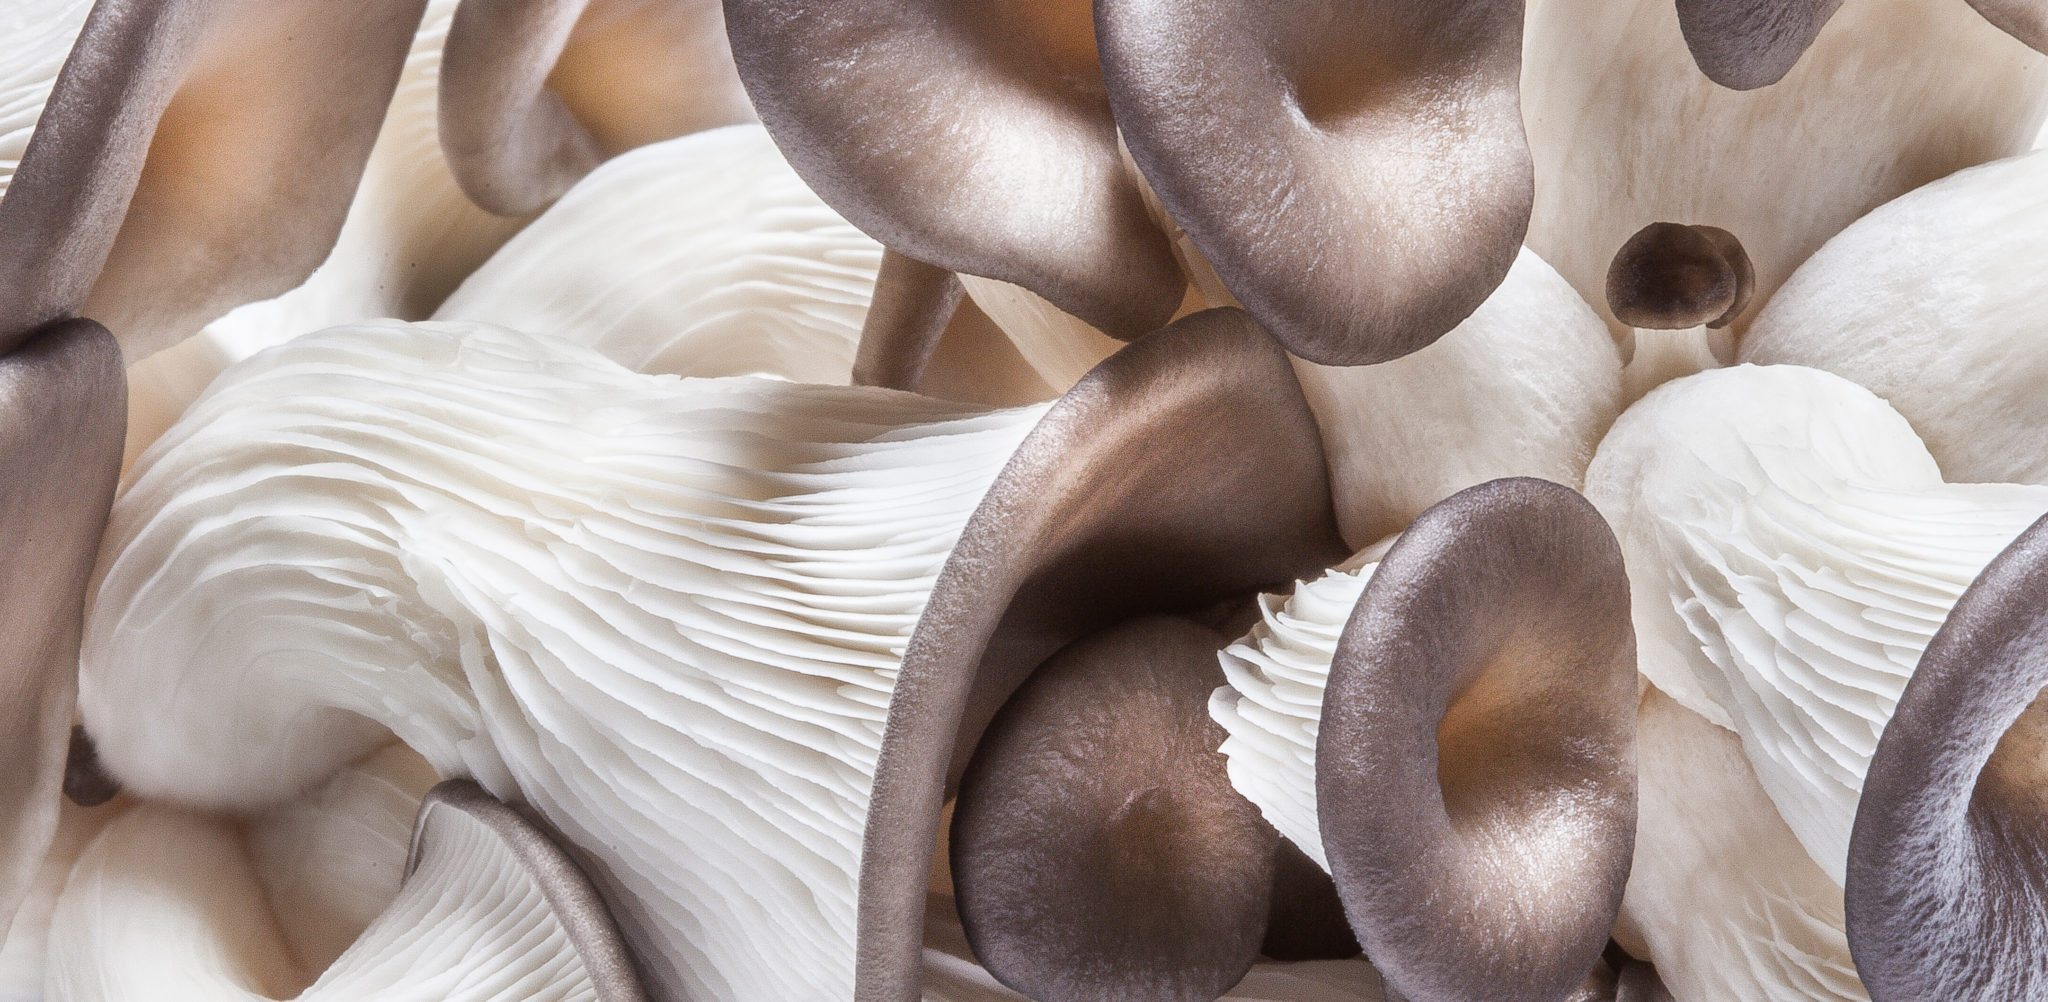 Edible raw Pearl Oyster Mushrooms